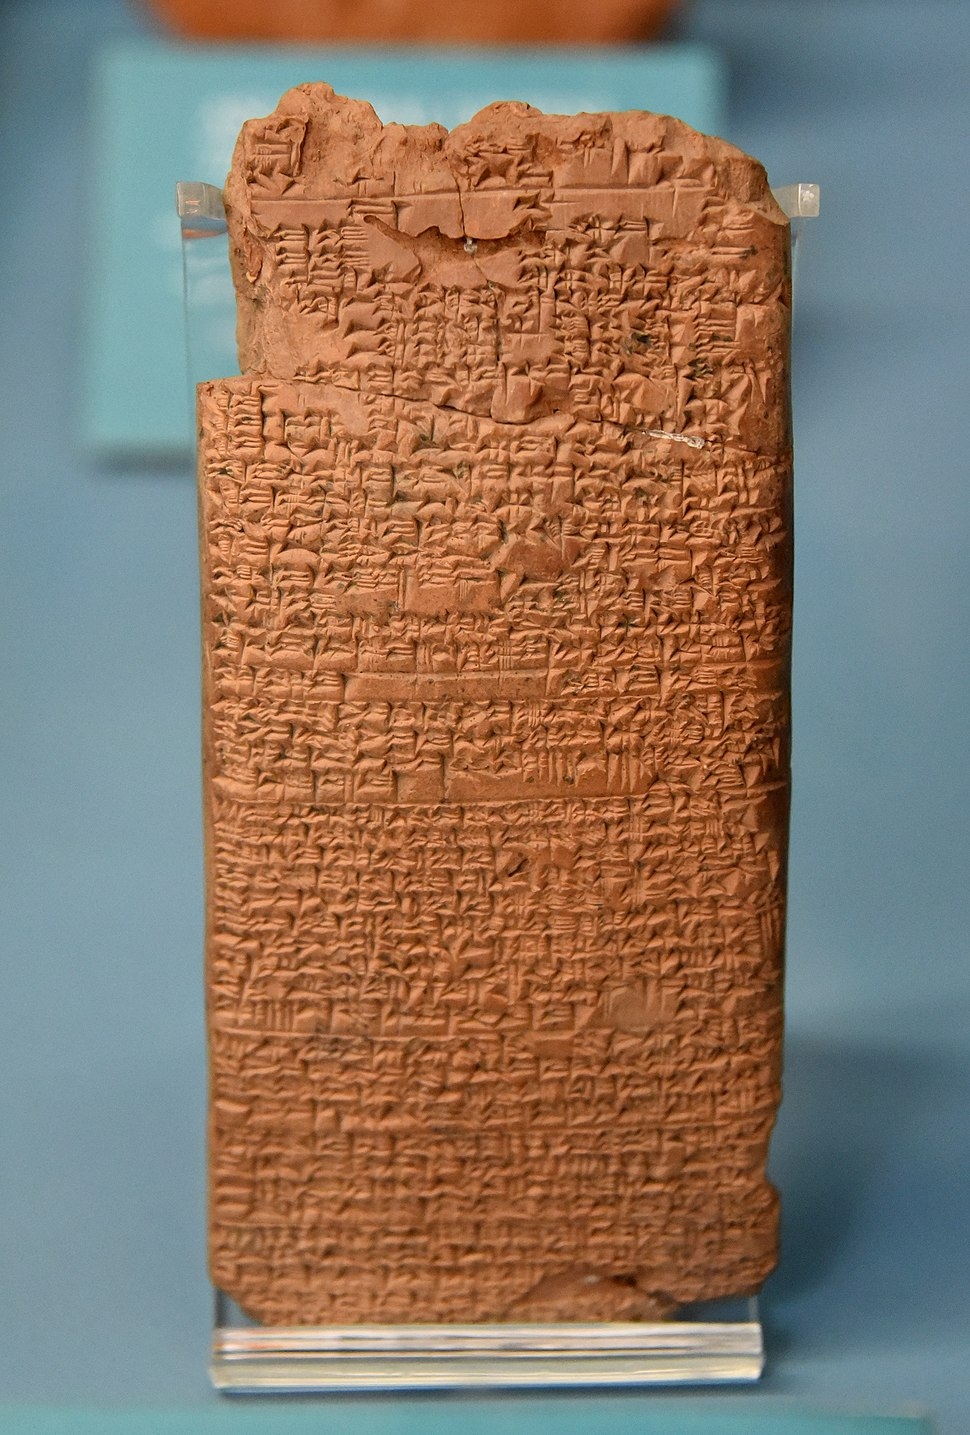 Medical recipe concerning poisoning. Terracotta tablet, from Nippur, Iraq, 18th century BCE. Ancient Orient Museum, Istanbul